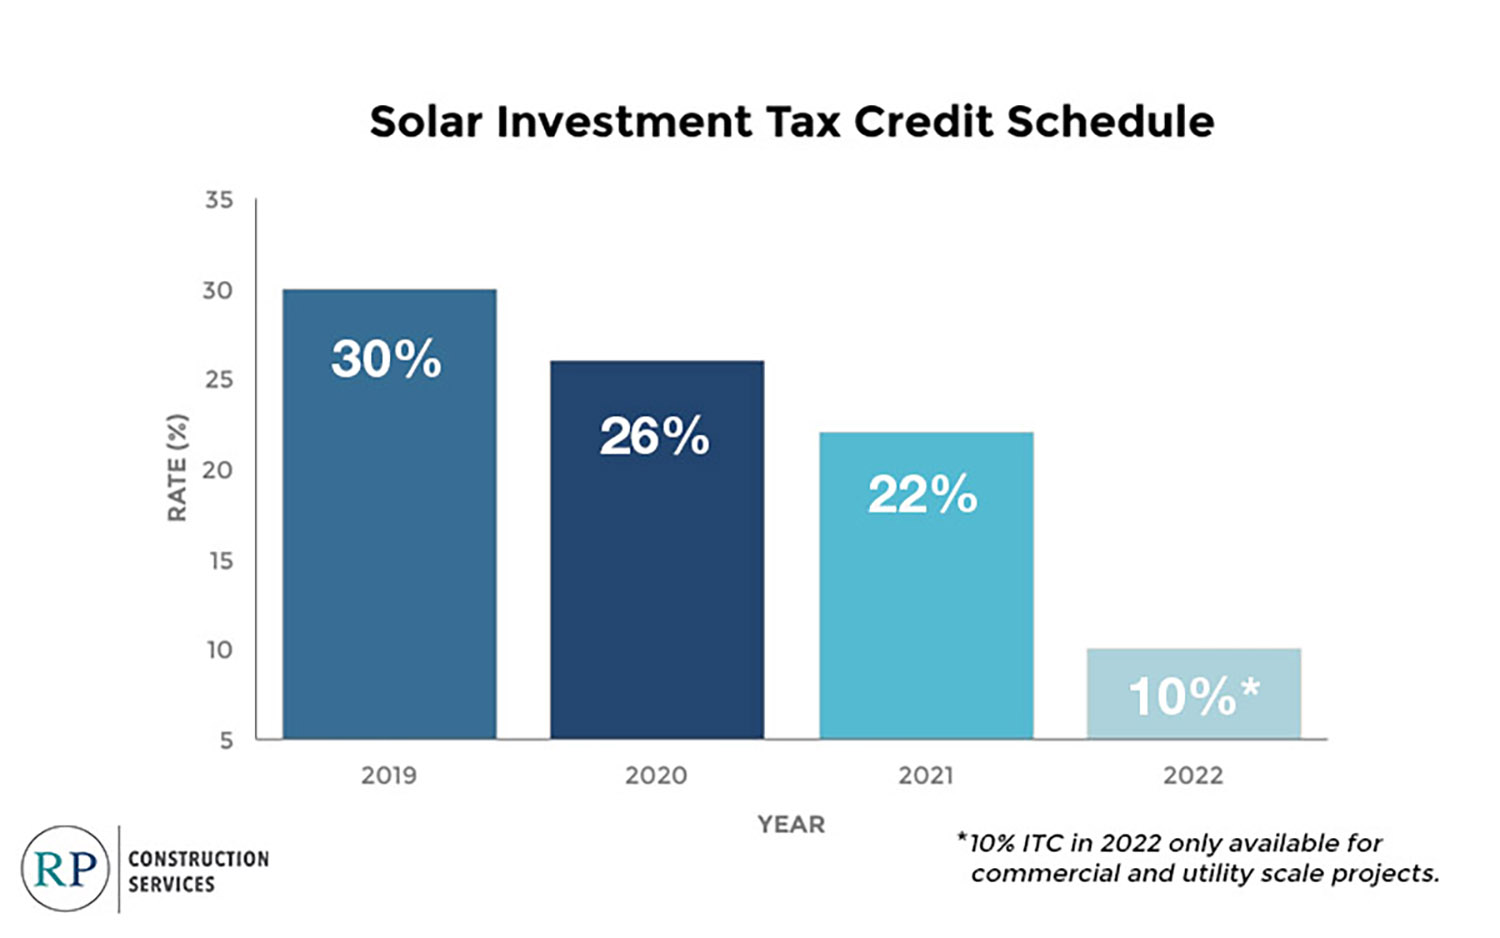 'Safe Harbor' from RPCS helps solar developers benefit from this year's ITC rate next year